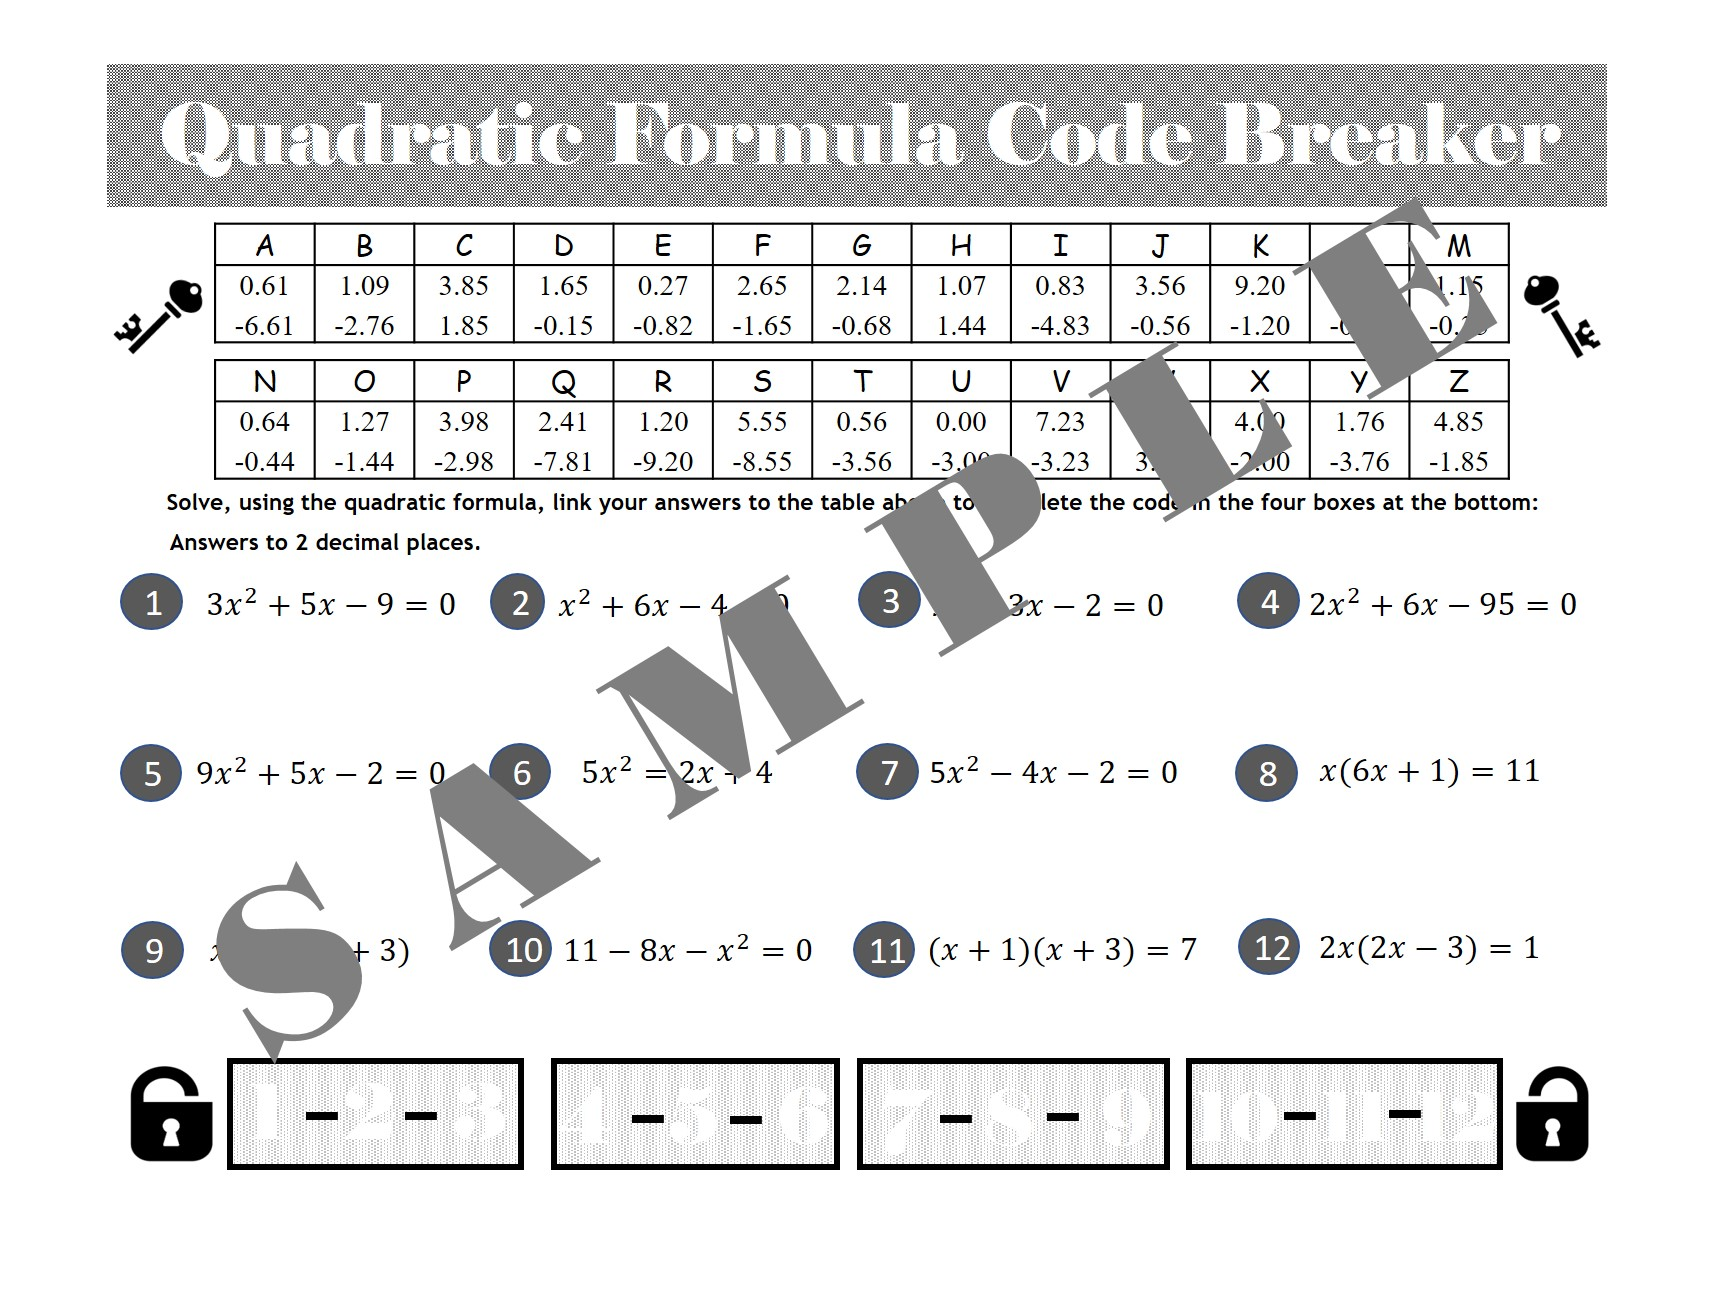 Quadratic Formula Code Breaker Activity